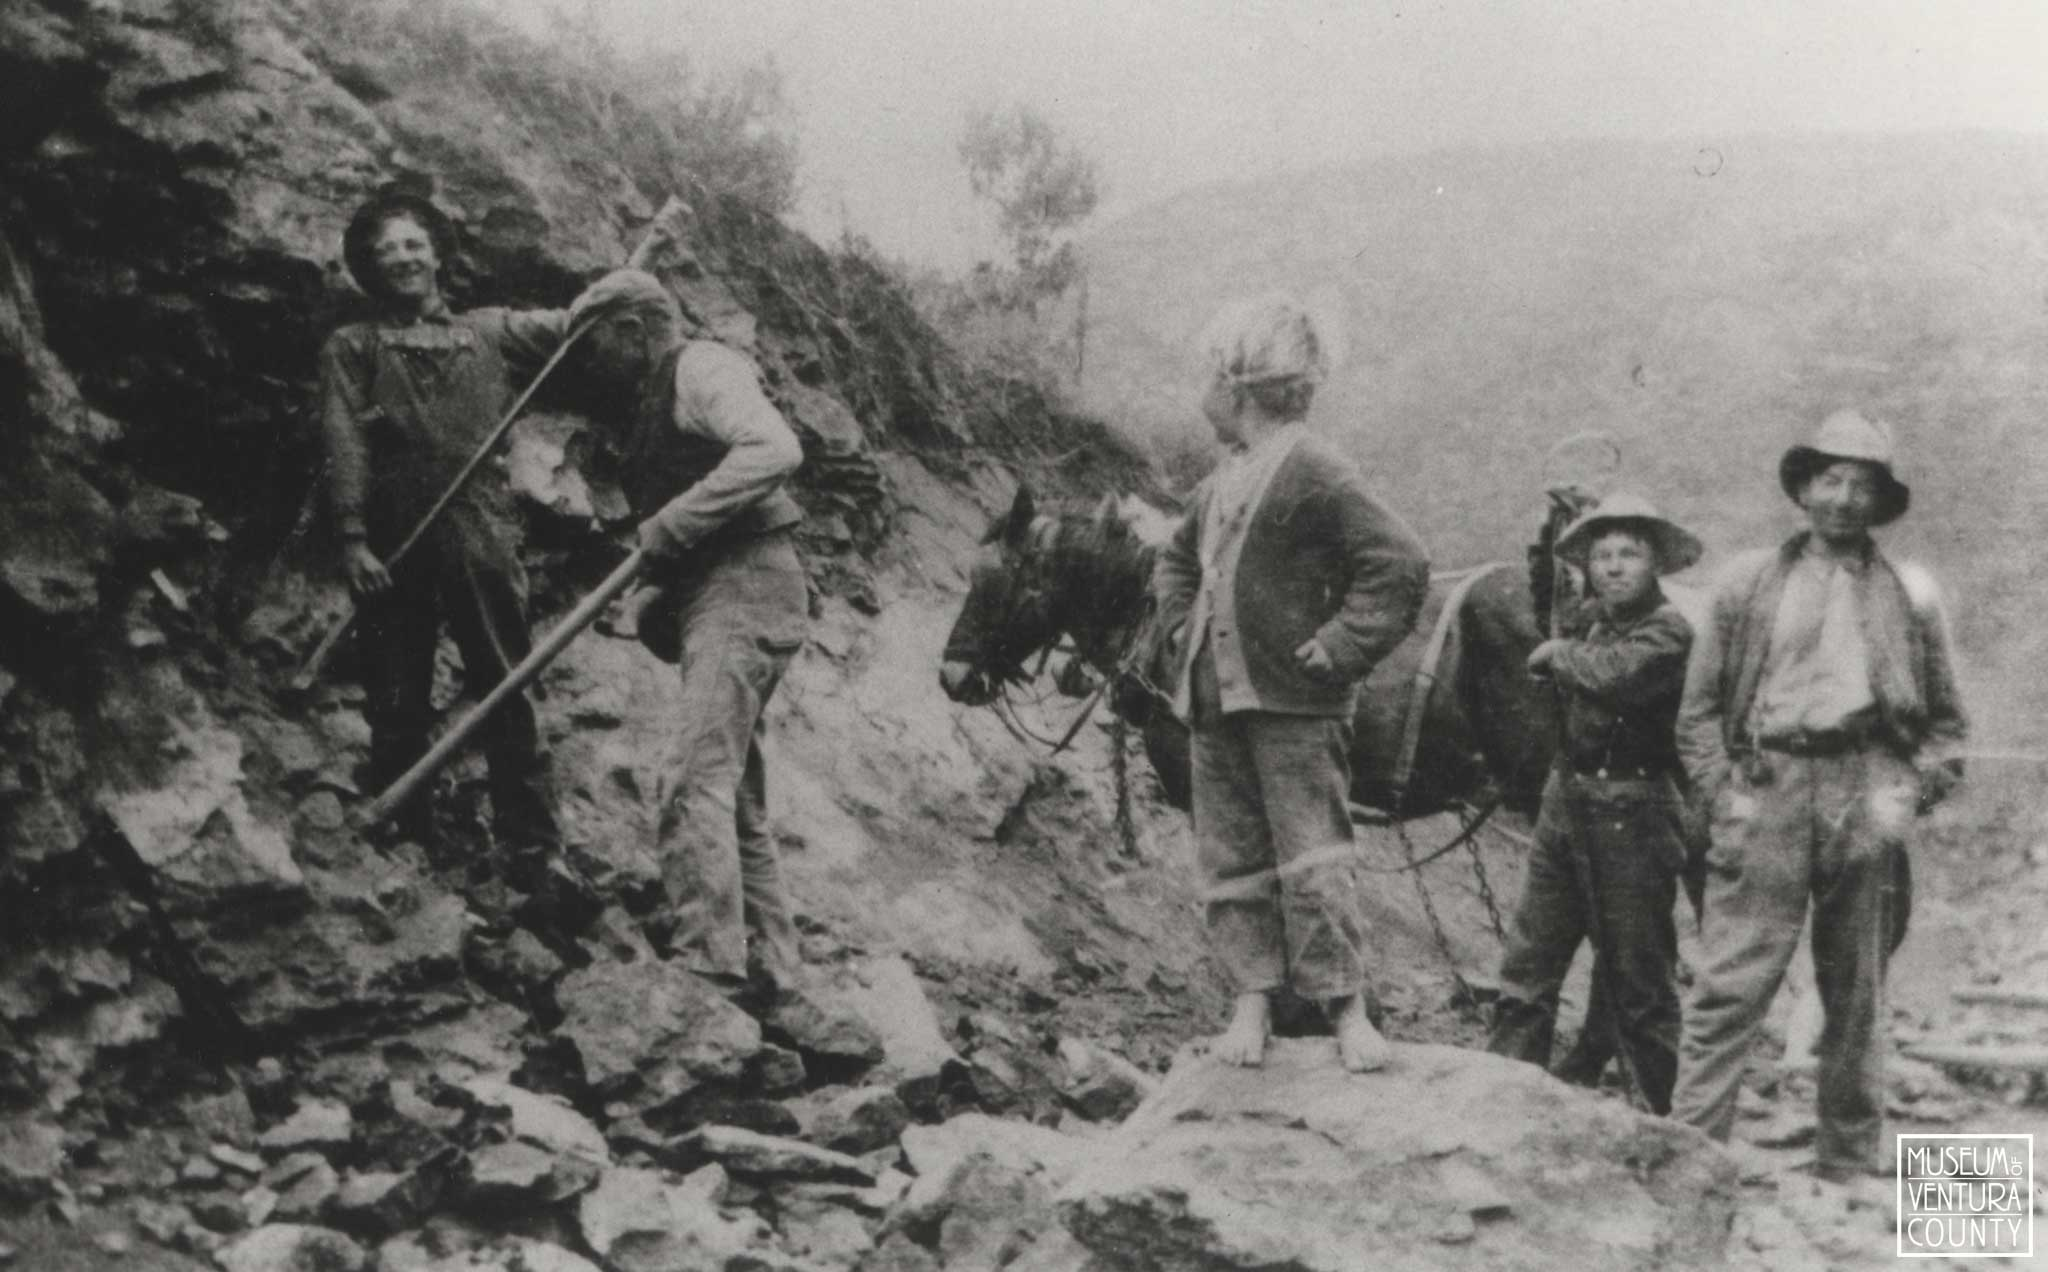 Workers on the Norwegian Grade c. 1911